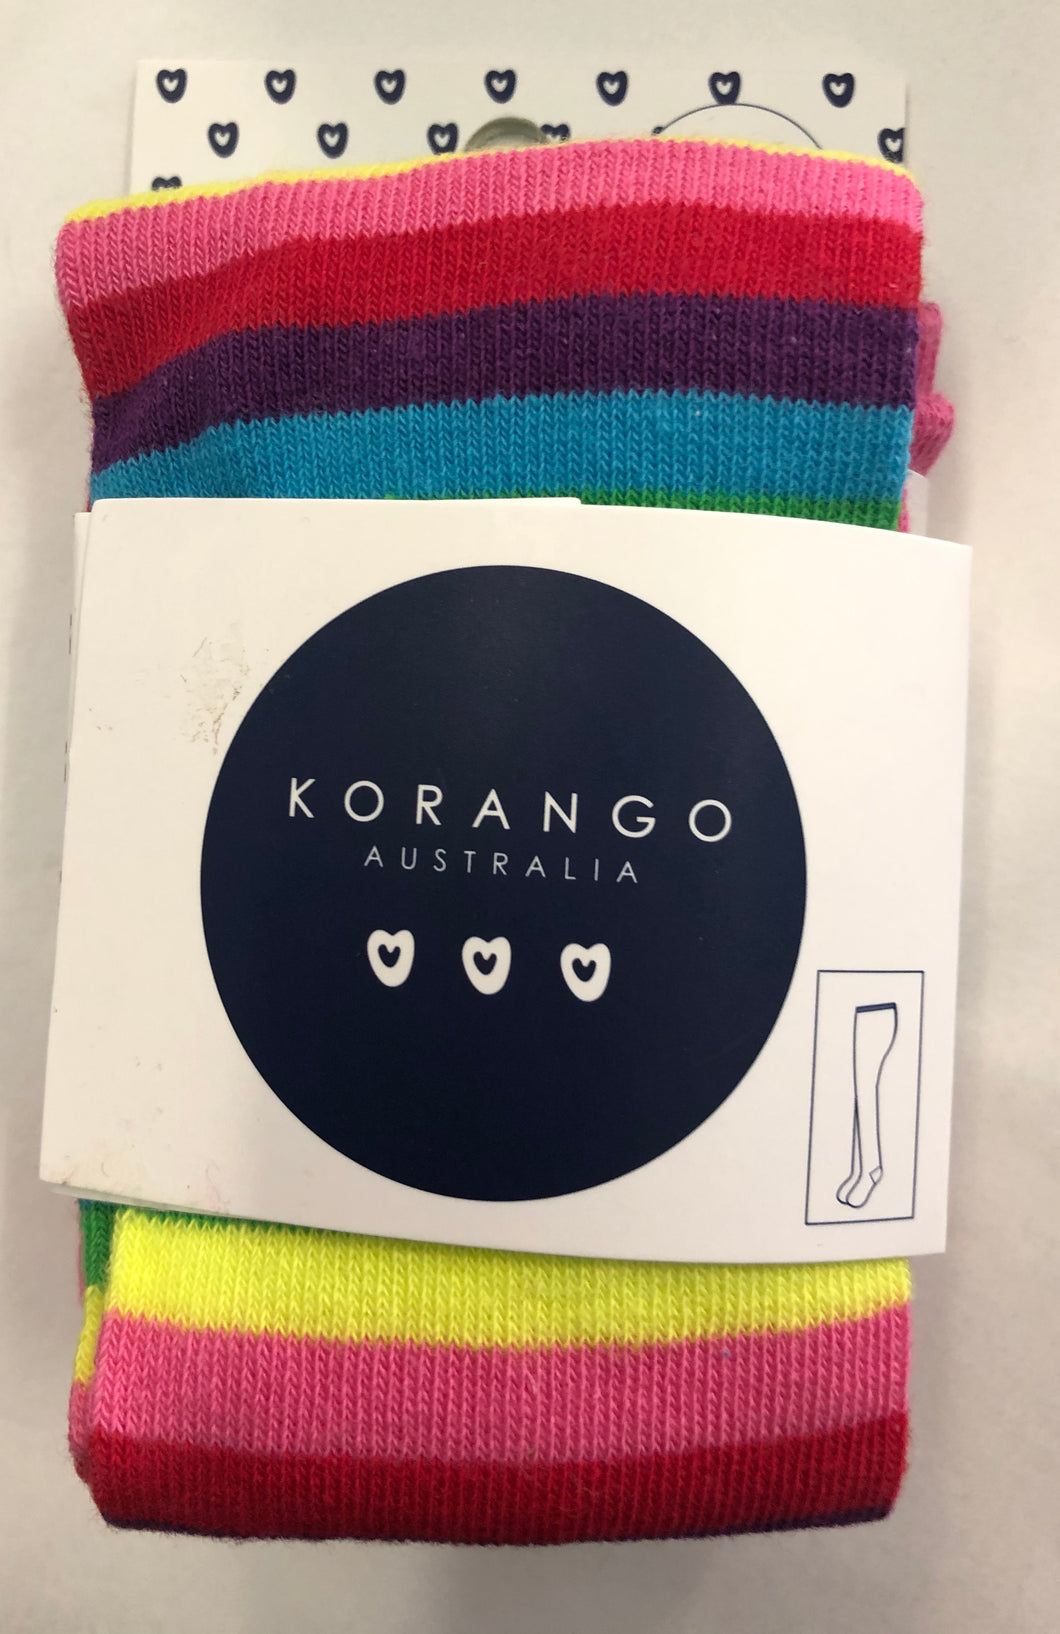 Korango Rainbow striped stocking